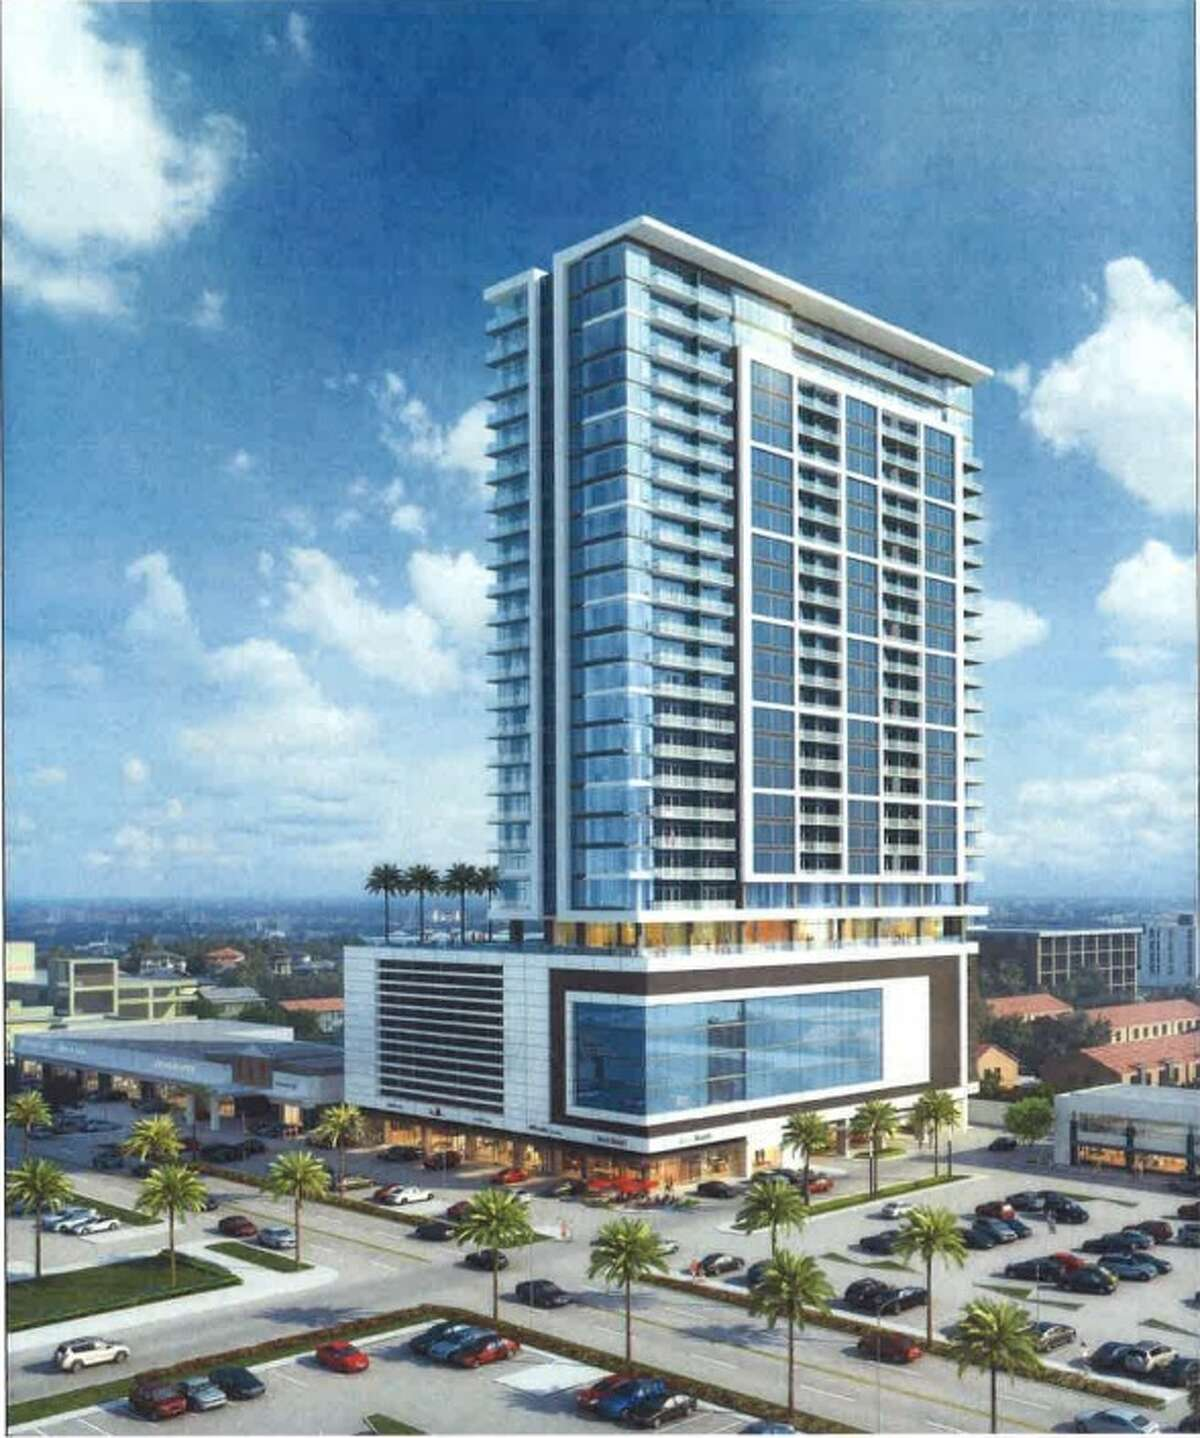 Weingarten Realty plans to build a 29-story tower in part of the River Oaks Shipping District.